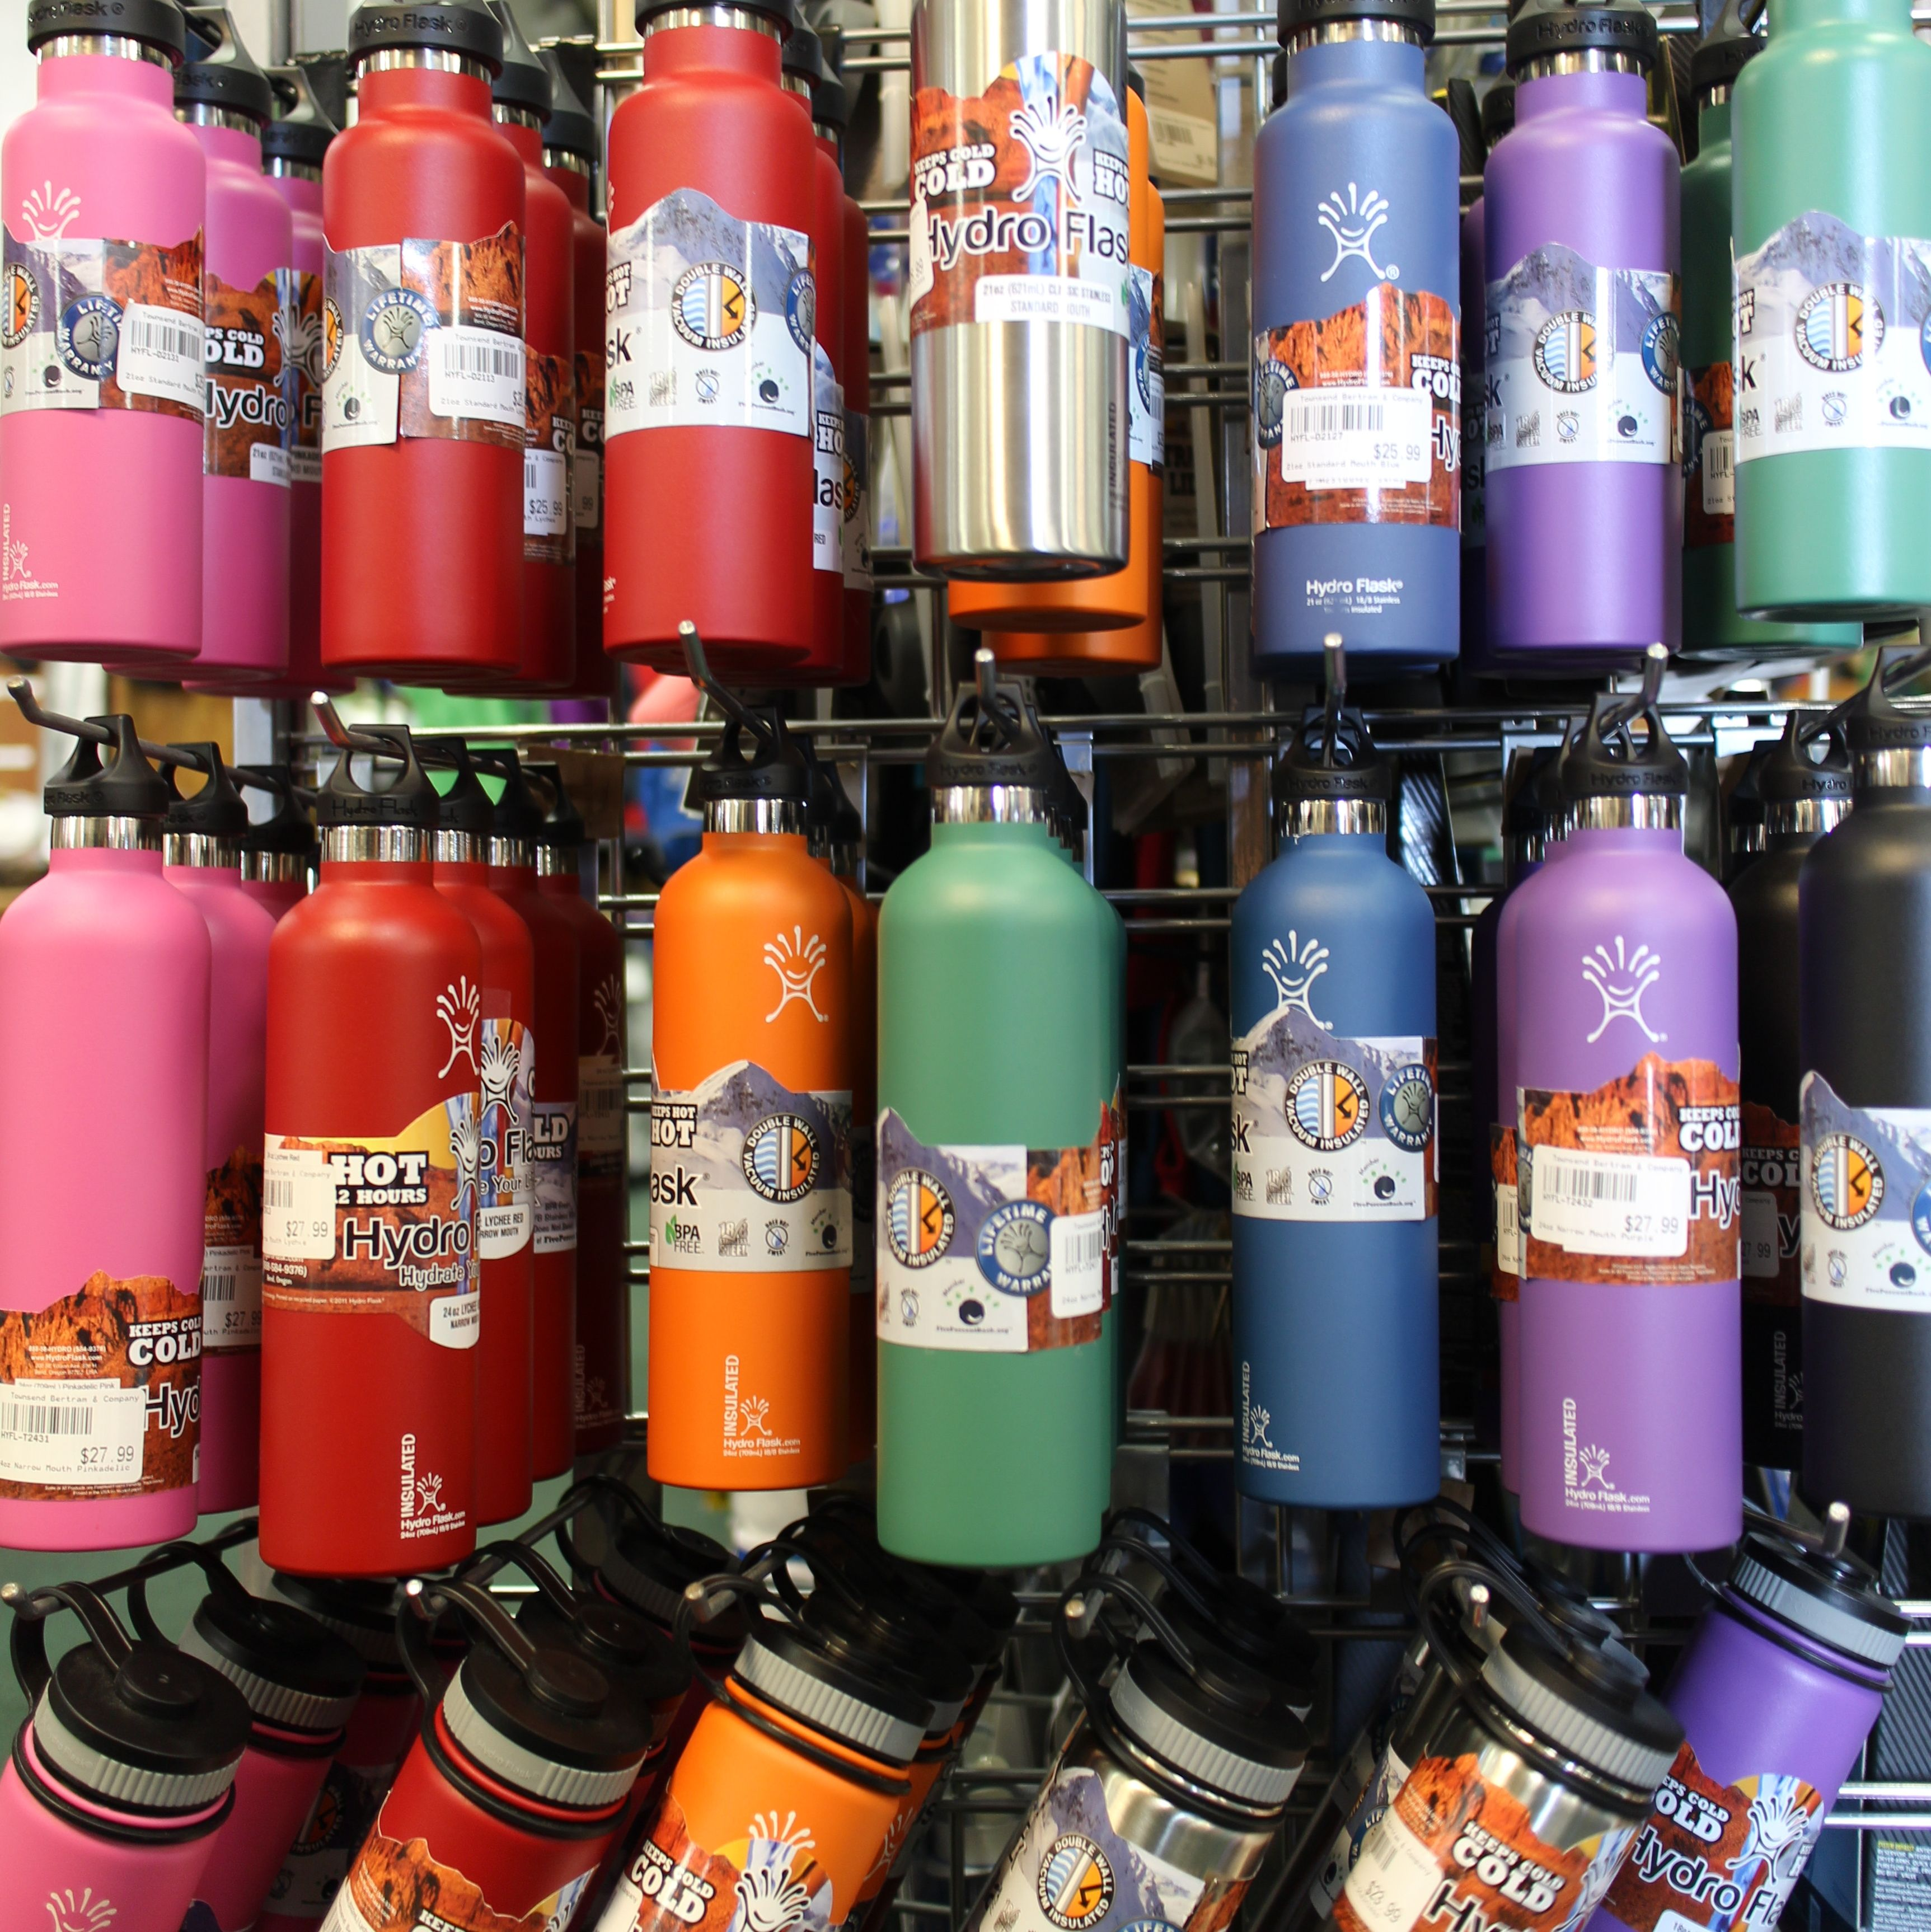 Hydro Flasks In A Rainbow Of Colors At Townsend Bertram Company Carrboro Nc Hydroflask Carrboro Bottle